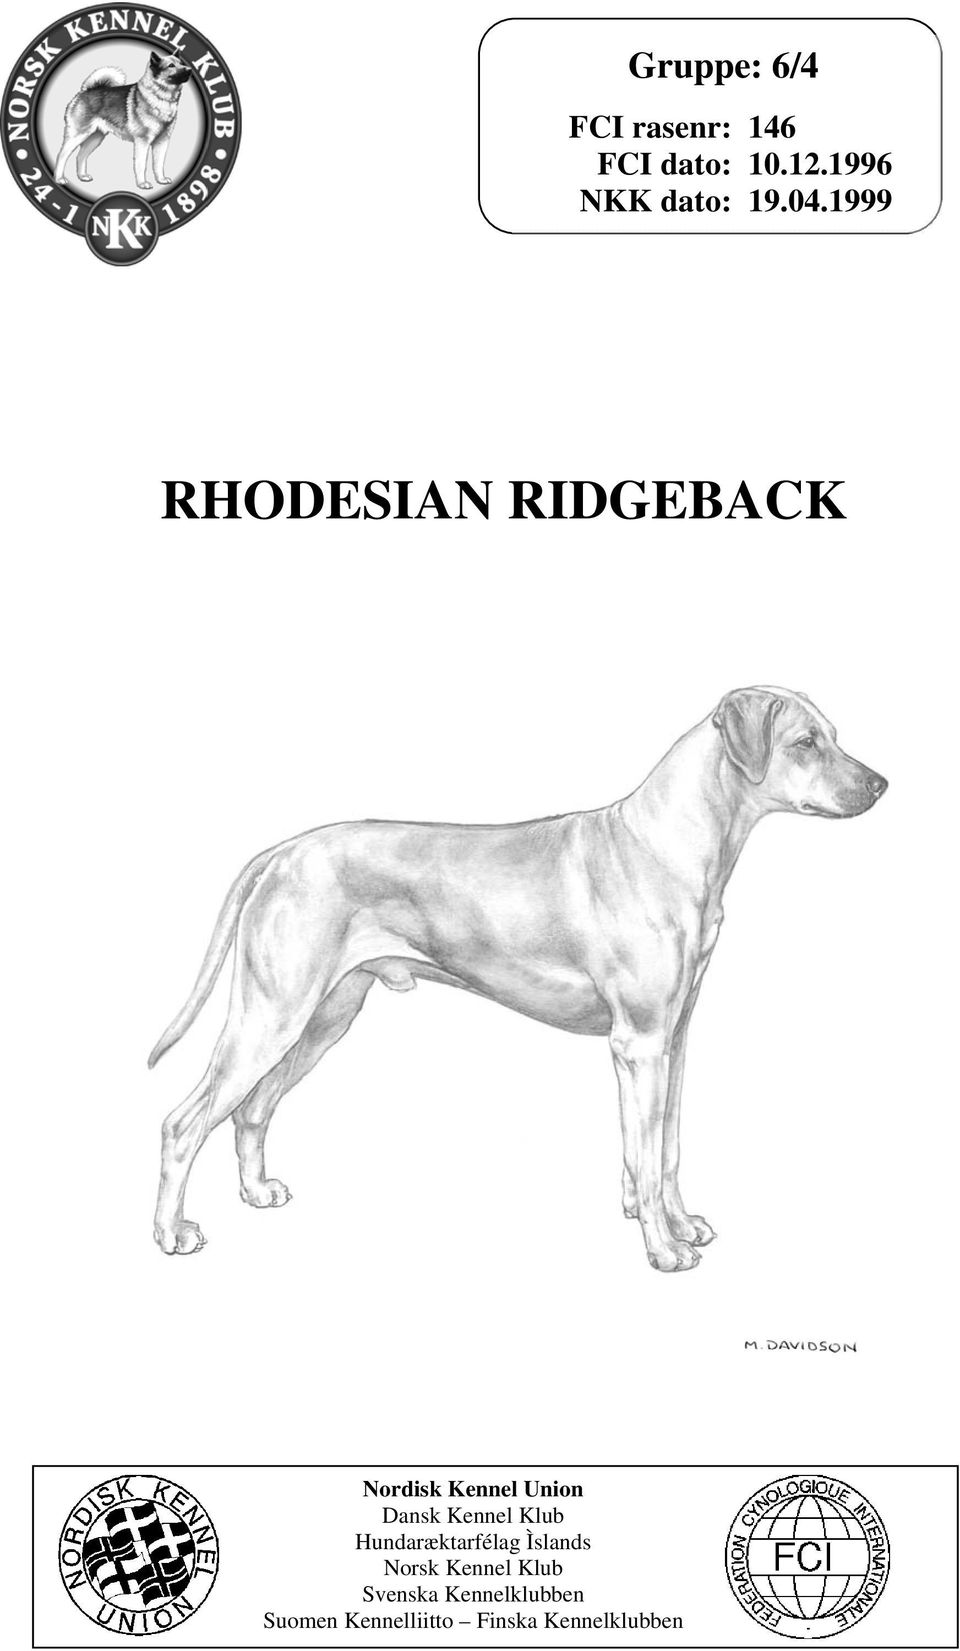 1999 RHODESIAN RIDGEBACK Nordisk Kennel Union Dansk Kennel